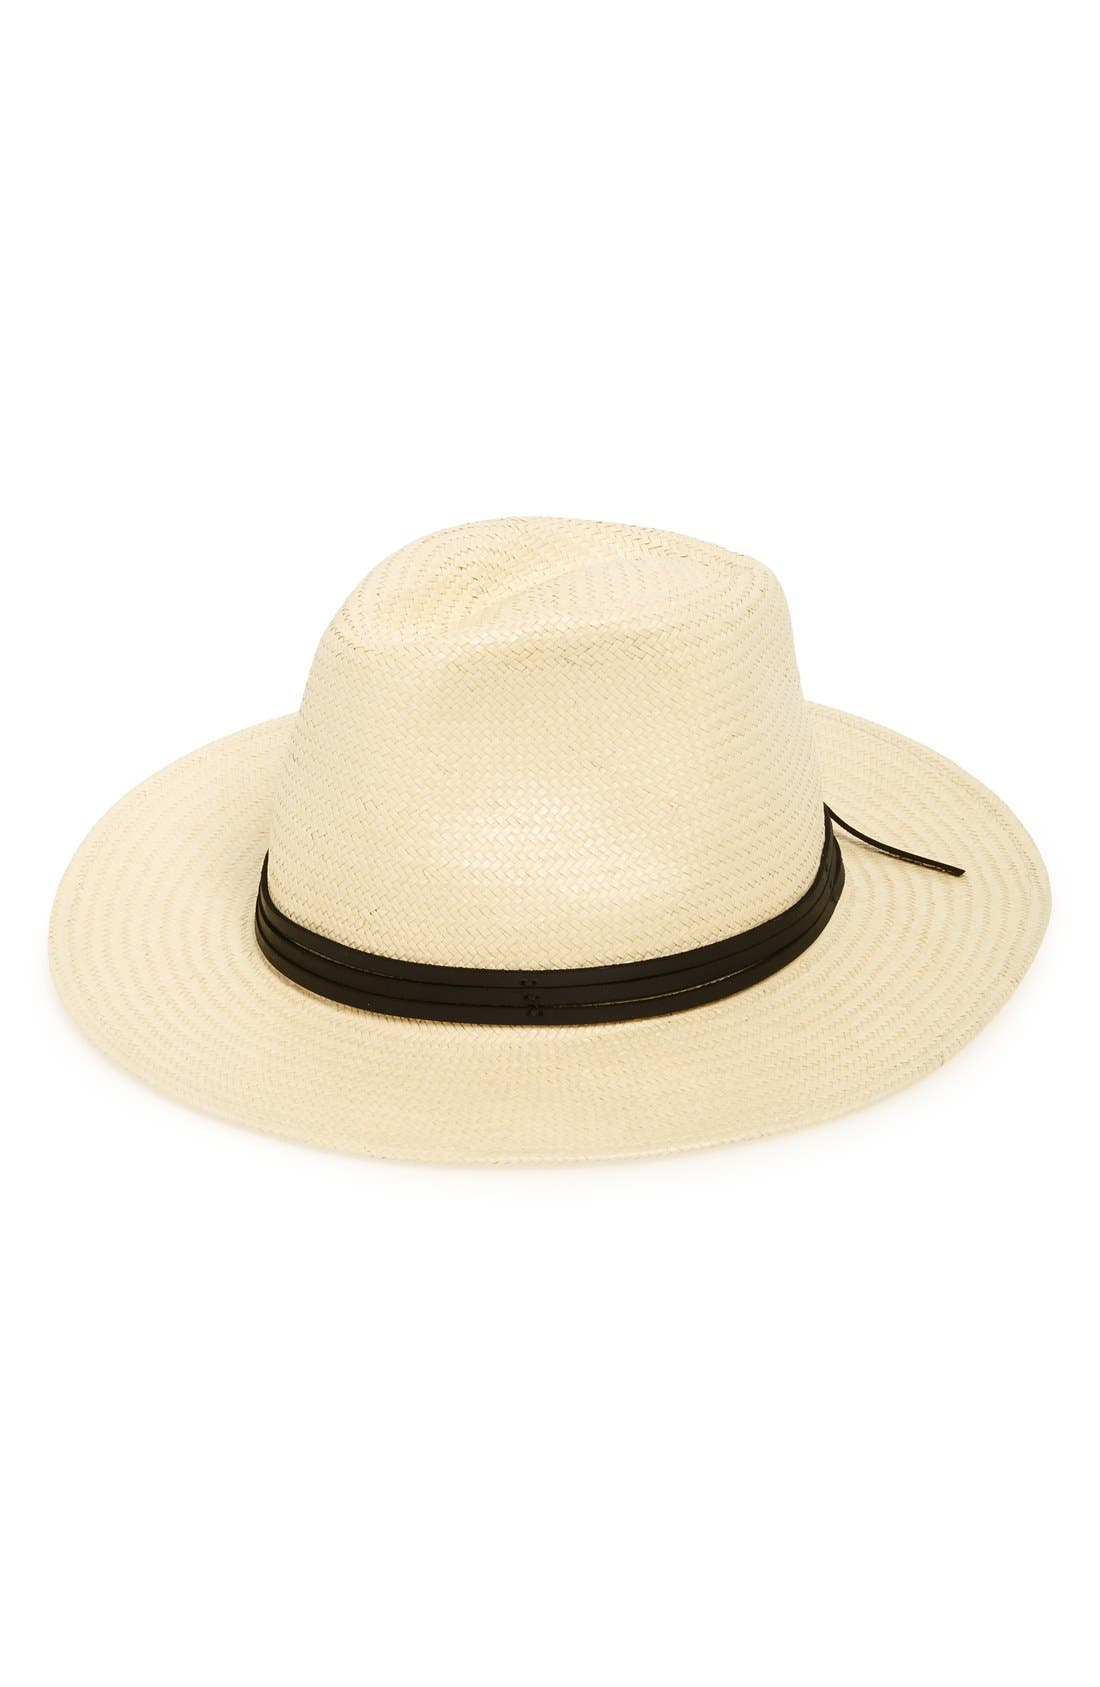 'Pacific' Straw Fedora,                             Main thumbnail 1, color,                             250